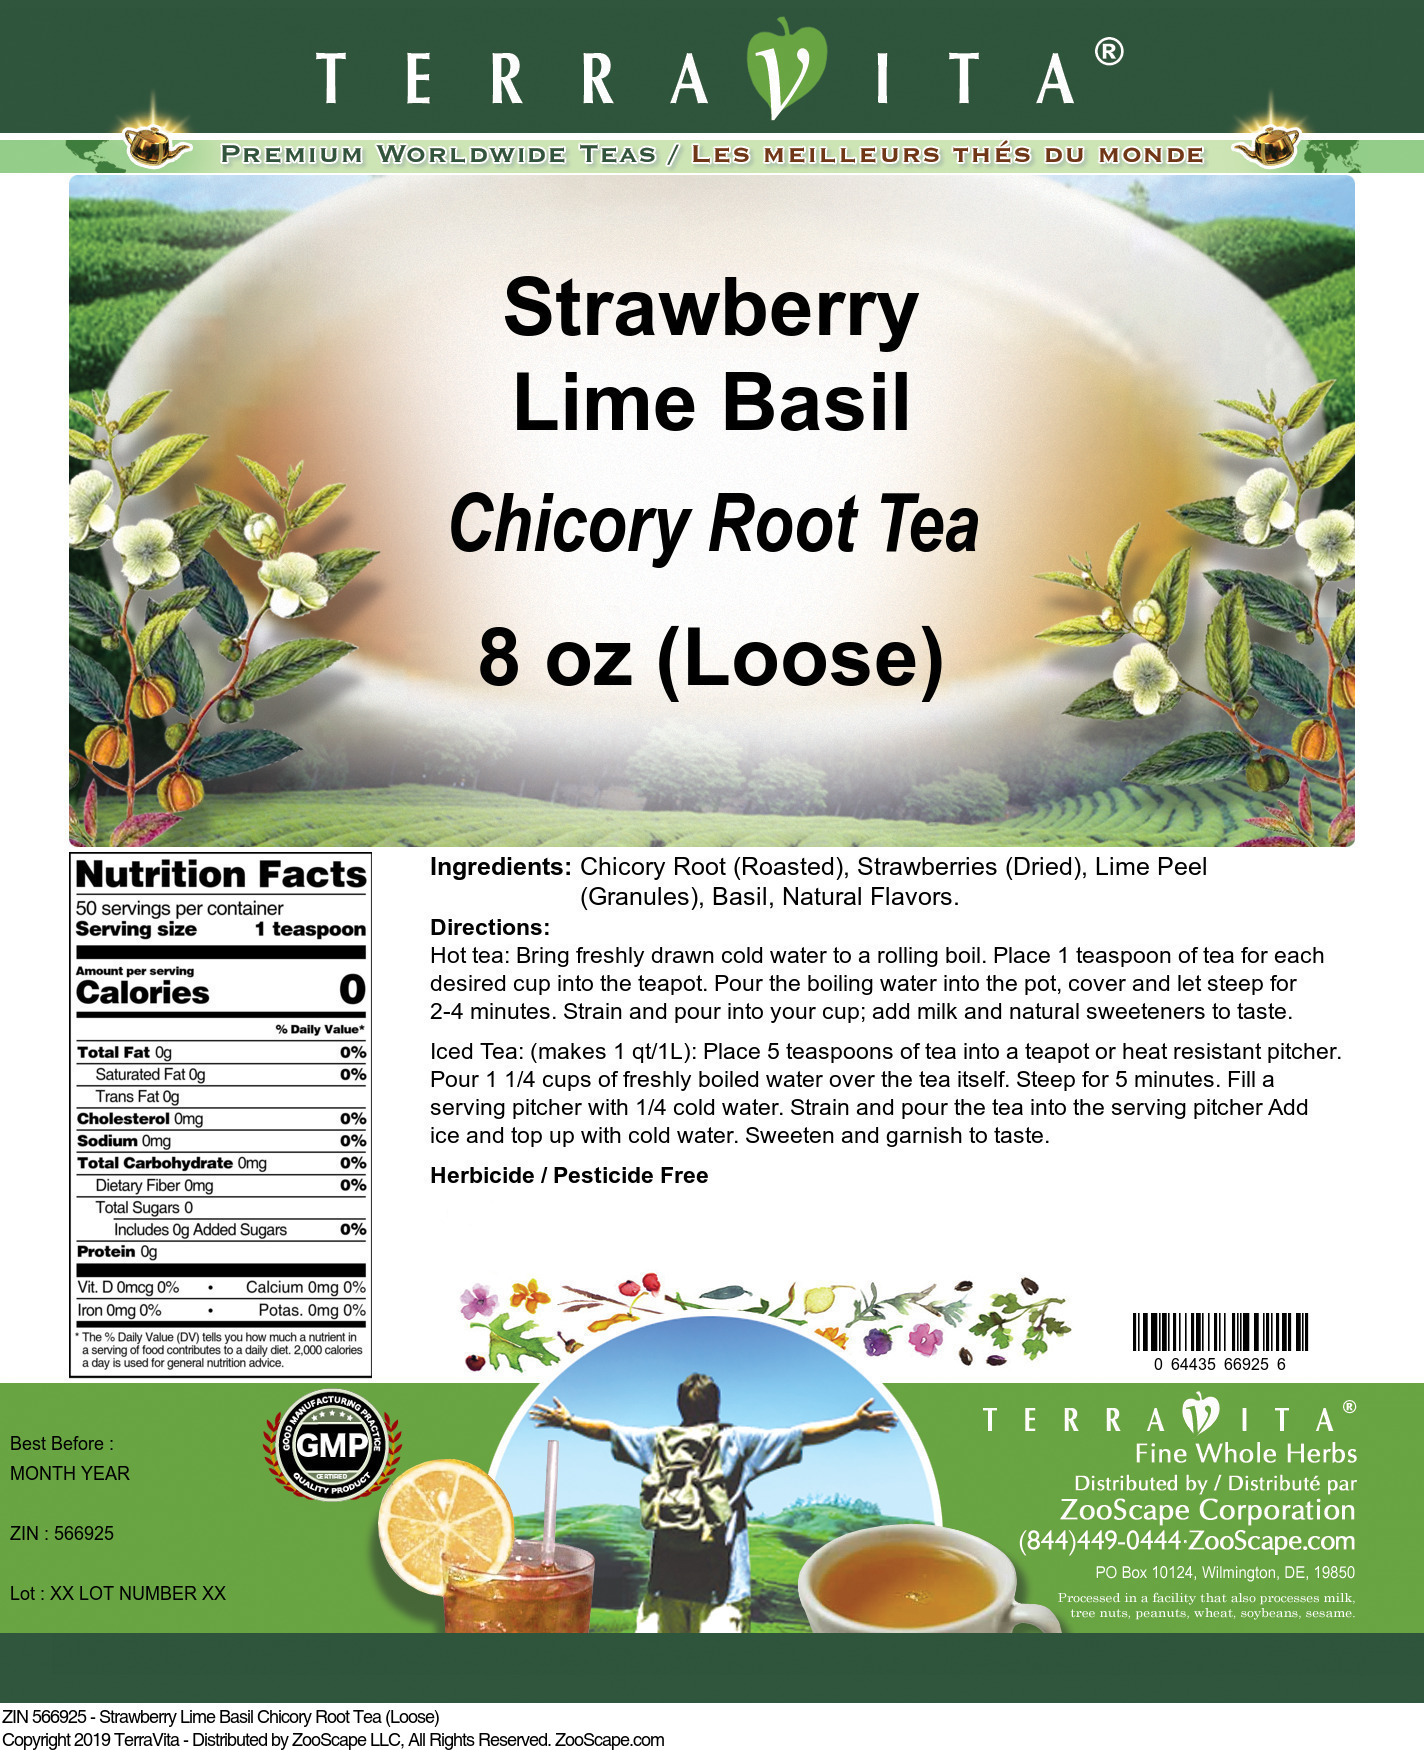 Strawberry Lime Basil Chicory Root Tea (Loose)